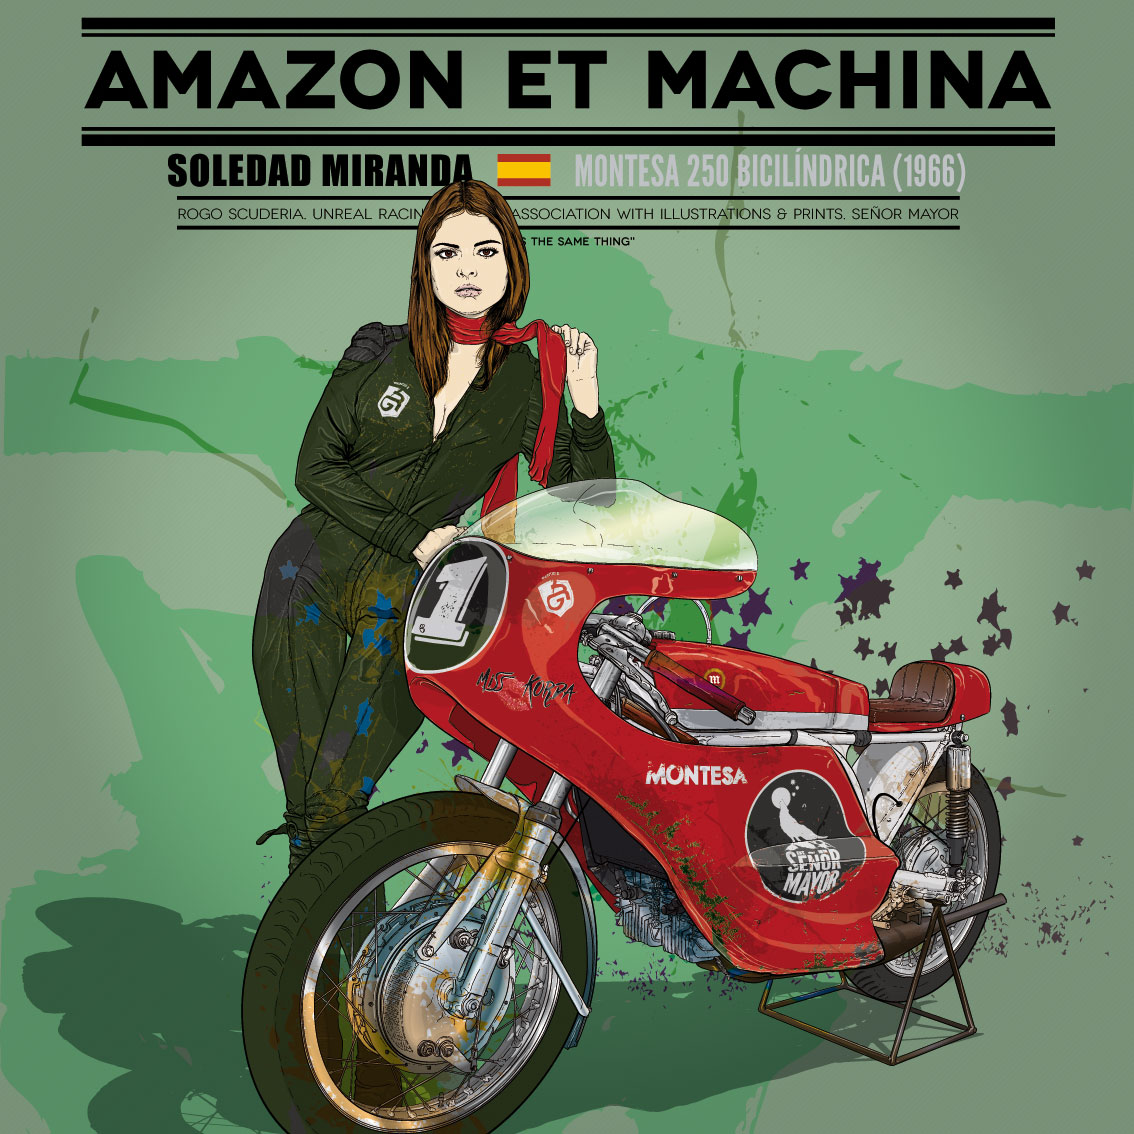 Soledad y su Montesa 250. Amazon et Machina